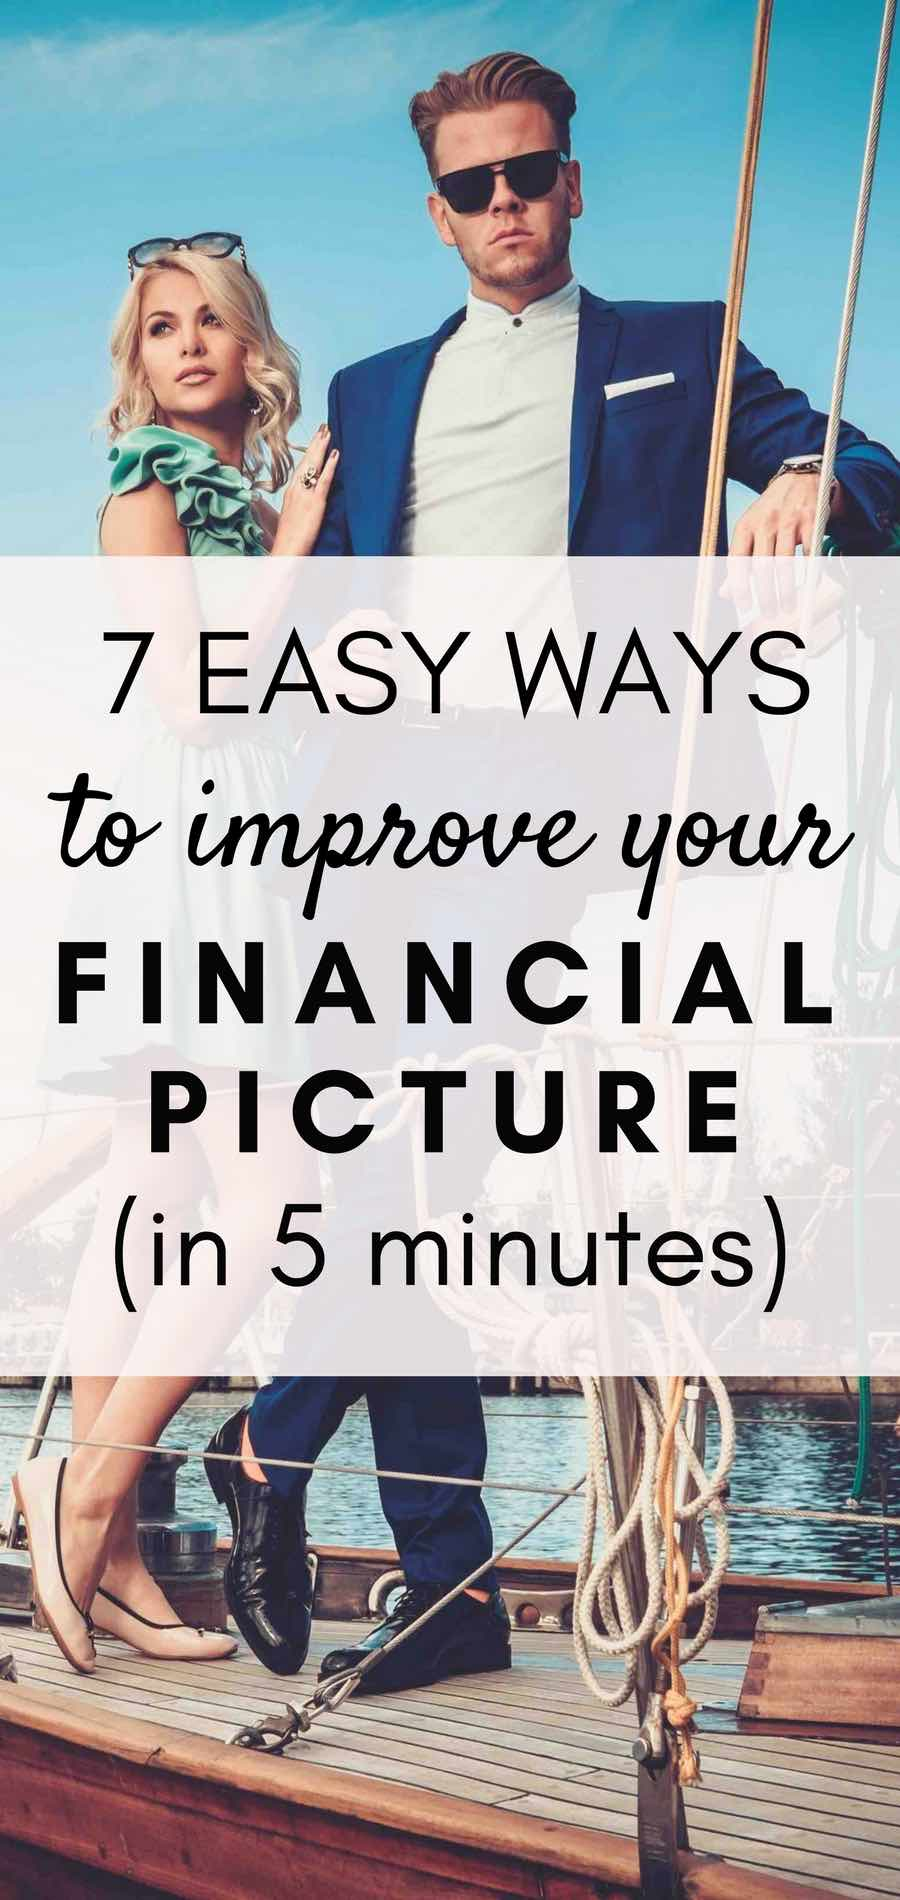 How to improve your finances in 7 easy steps - 5 mins of your time or less.